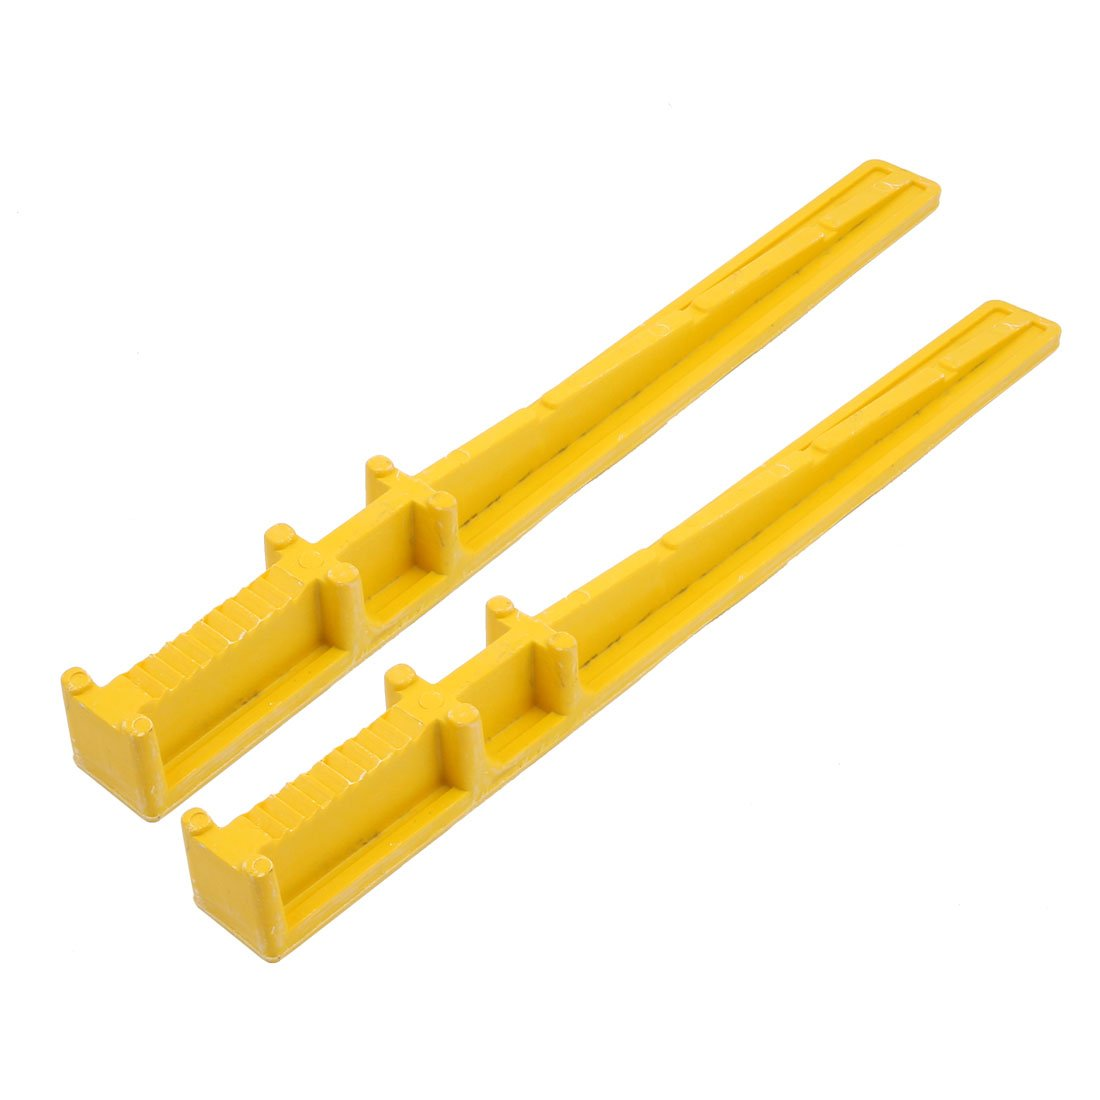 uxcell 2 Pcs High Strength FRP Cable Bracket 500mm Long Embedded Type Yellow